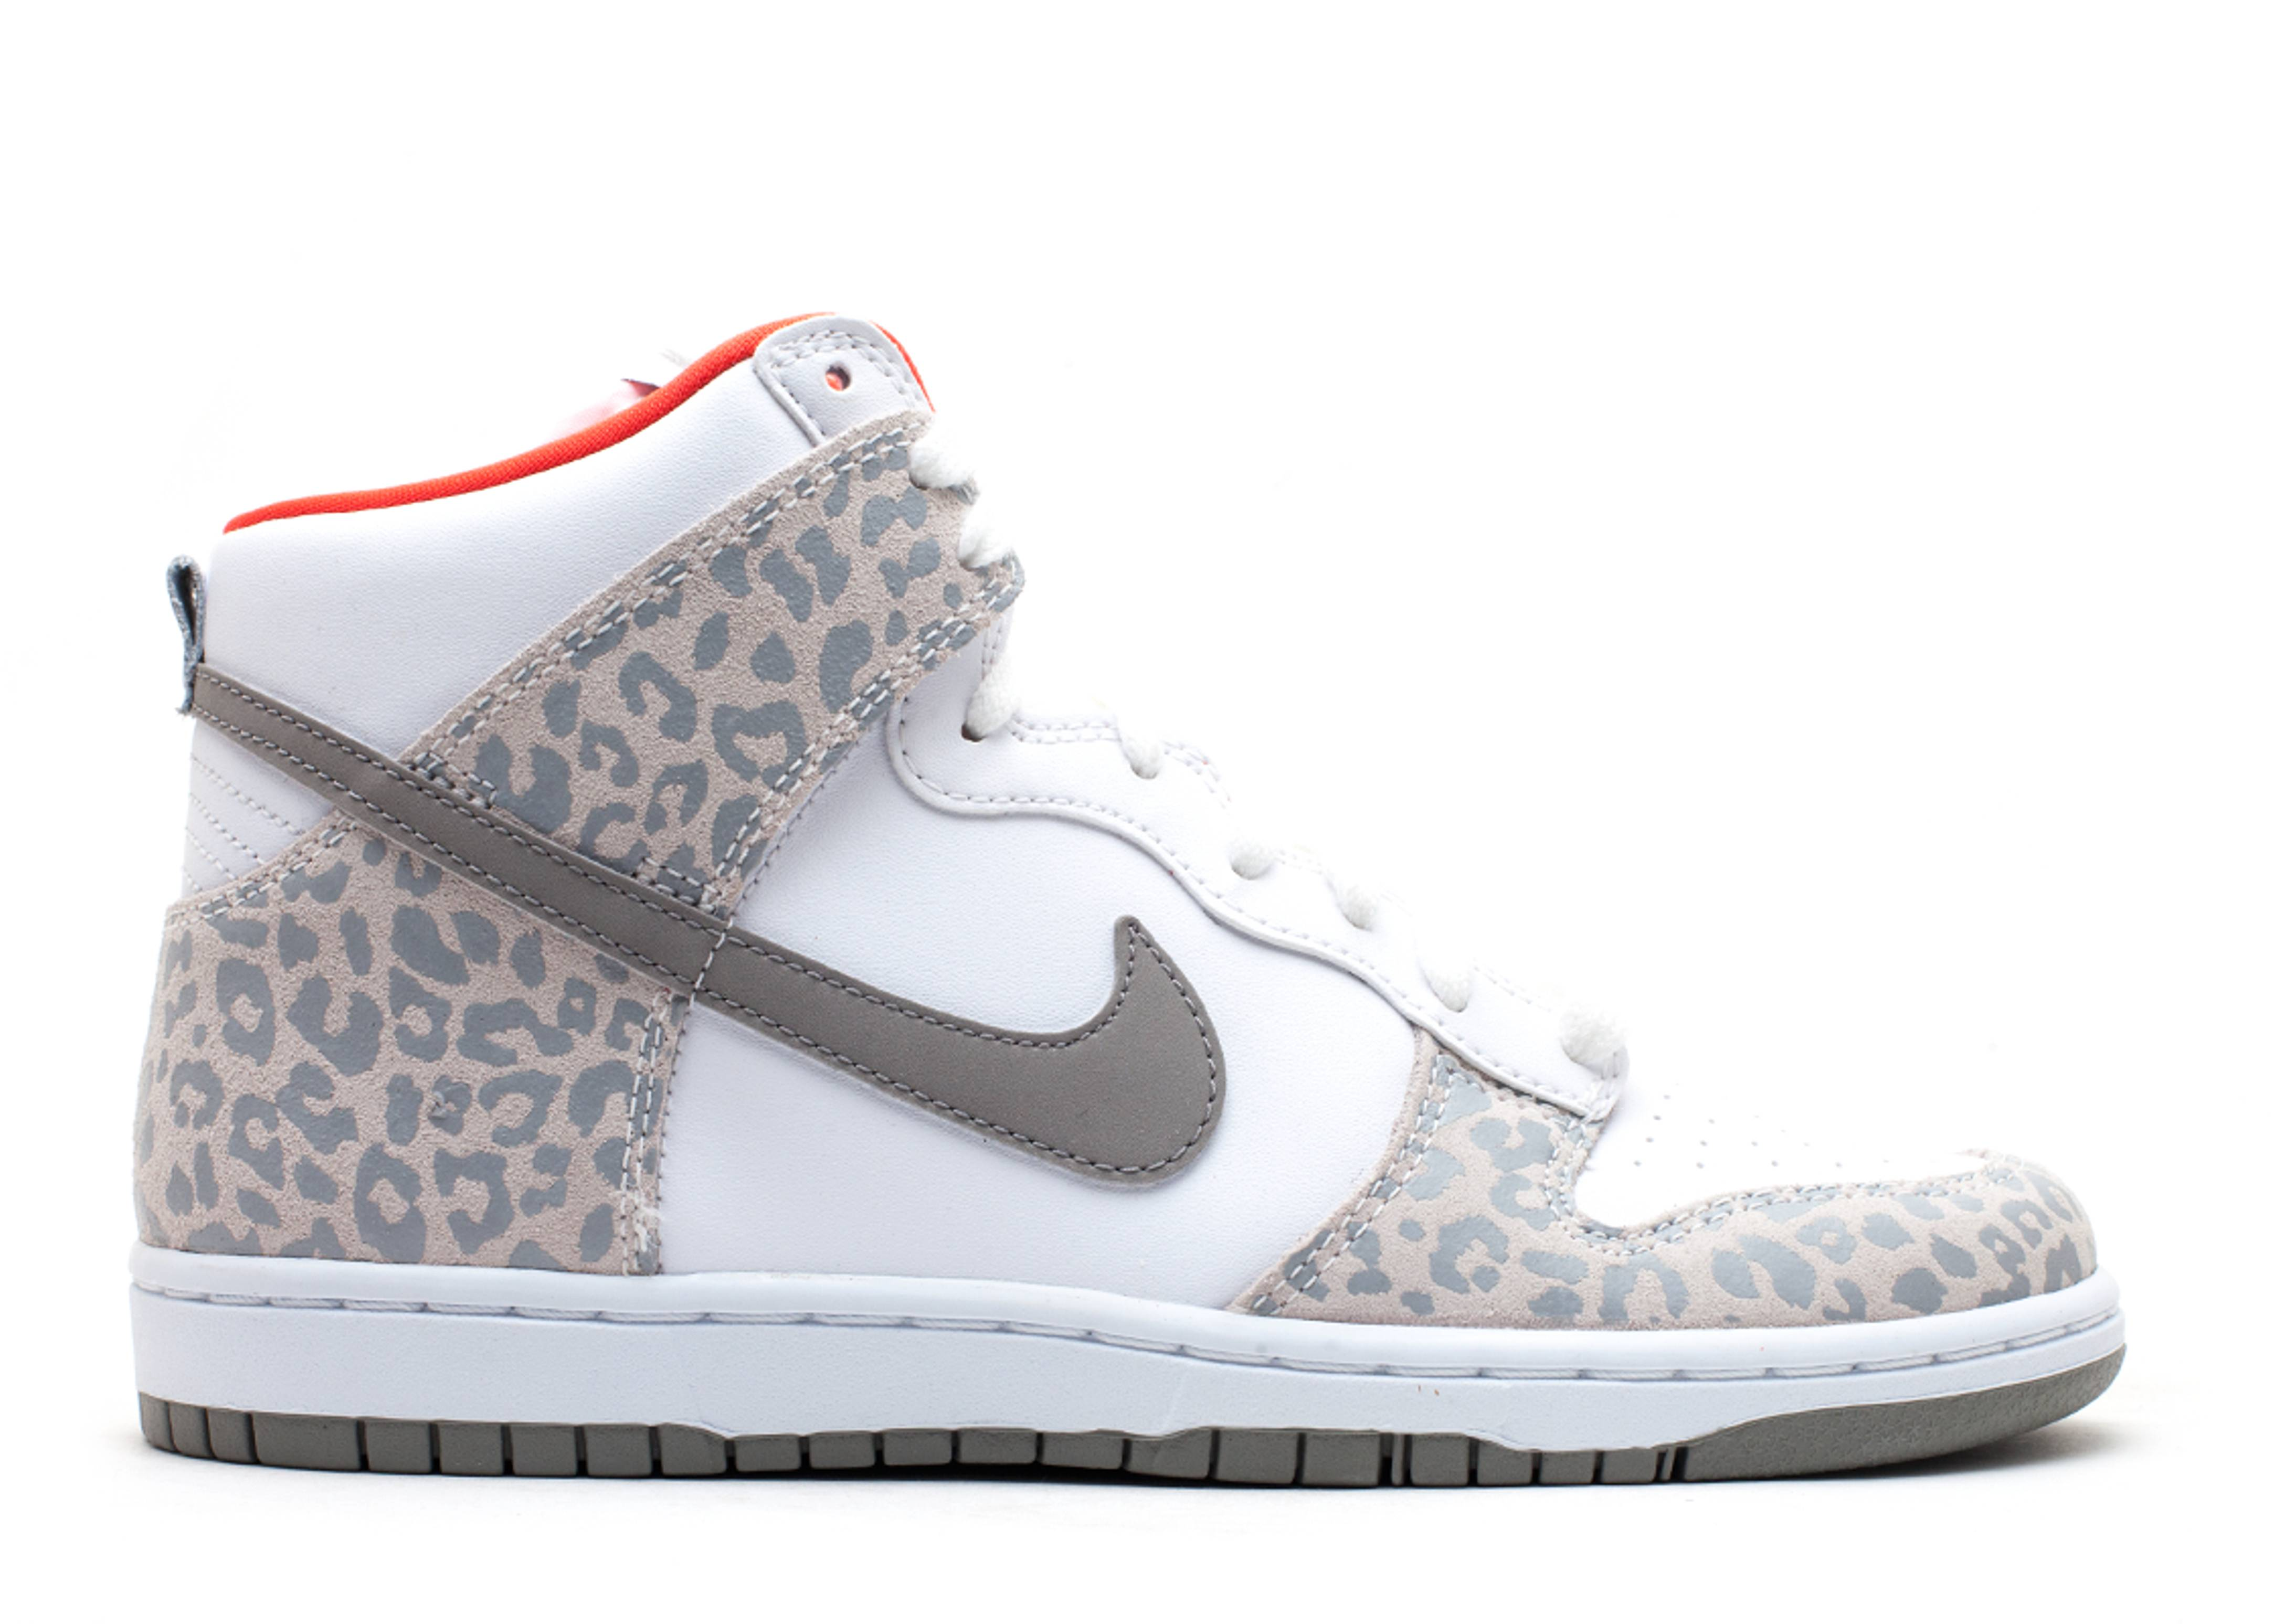 a00d930ad59f ... get nike. ws dunk high skinny leopard c21d9 749bf